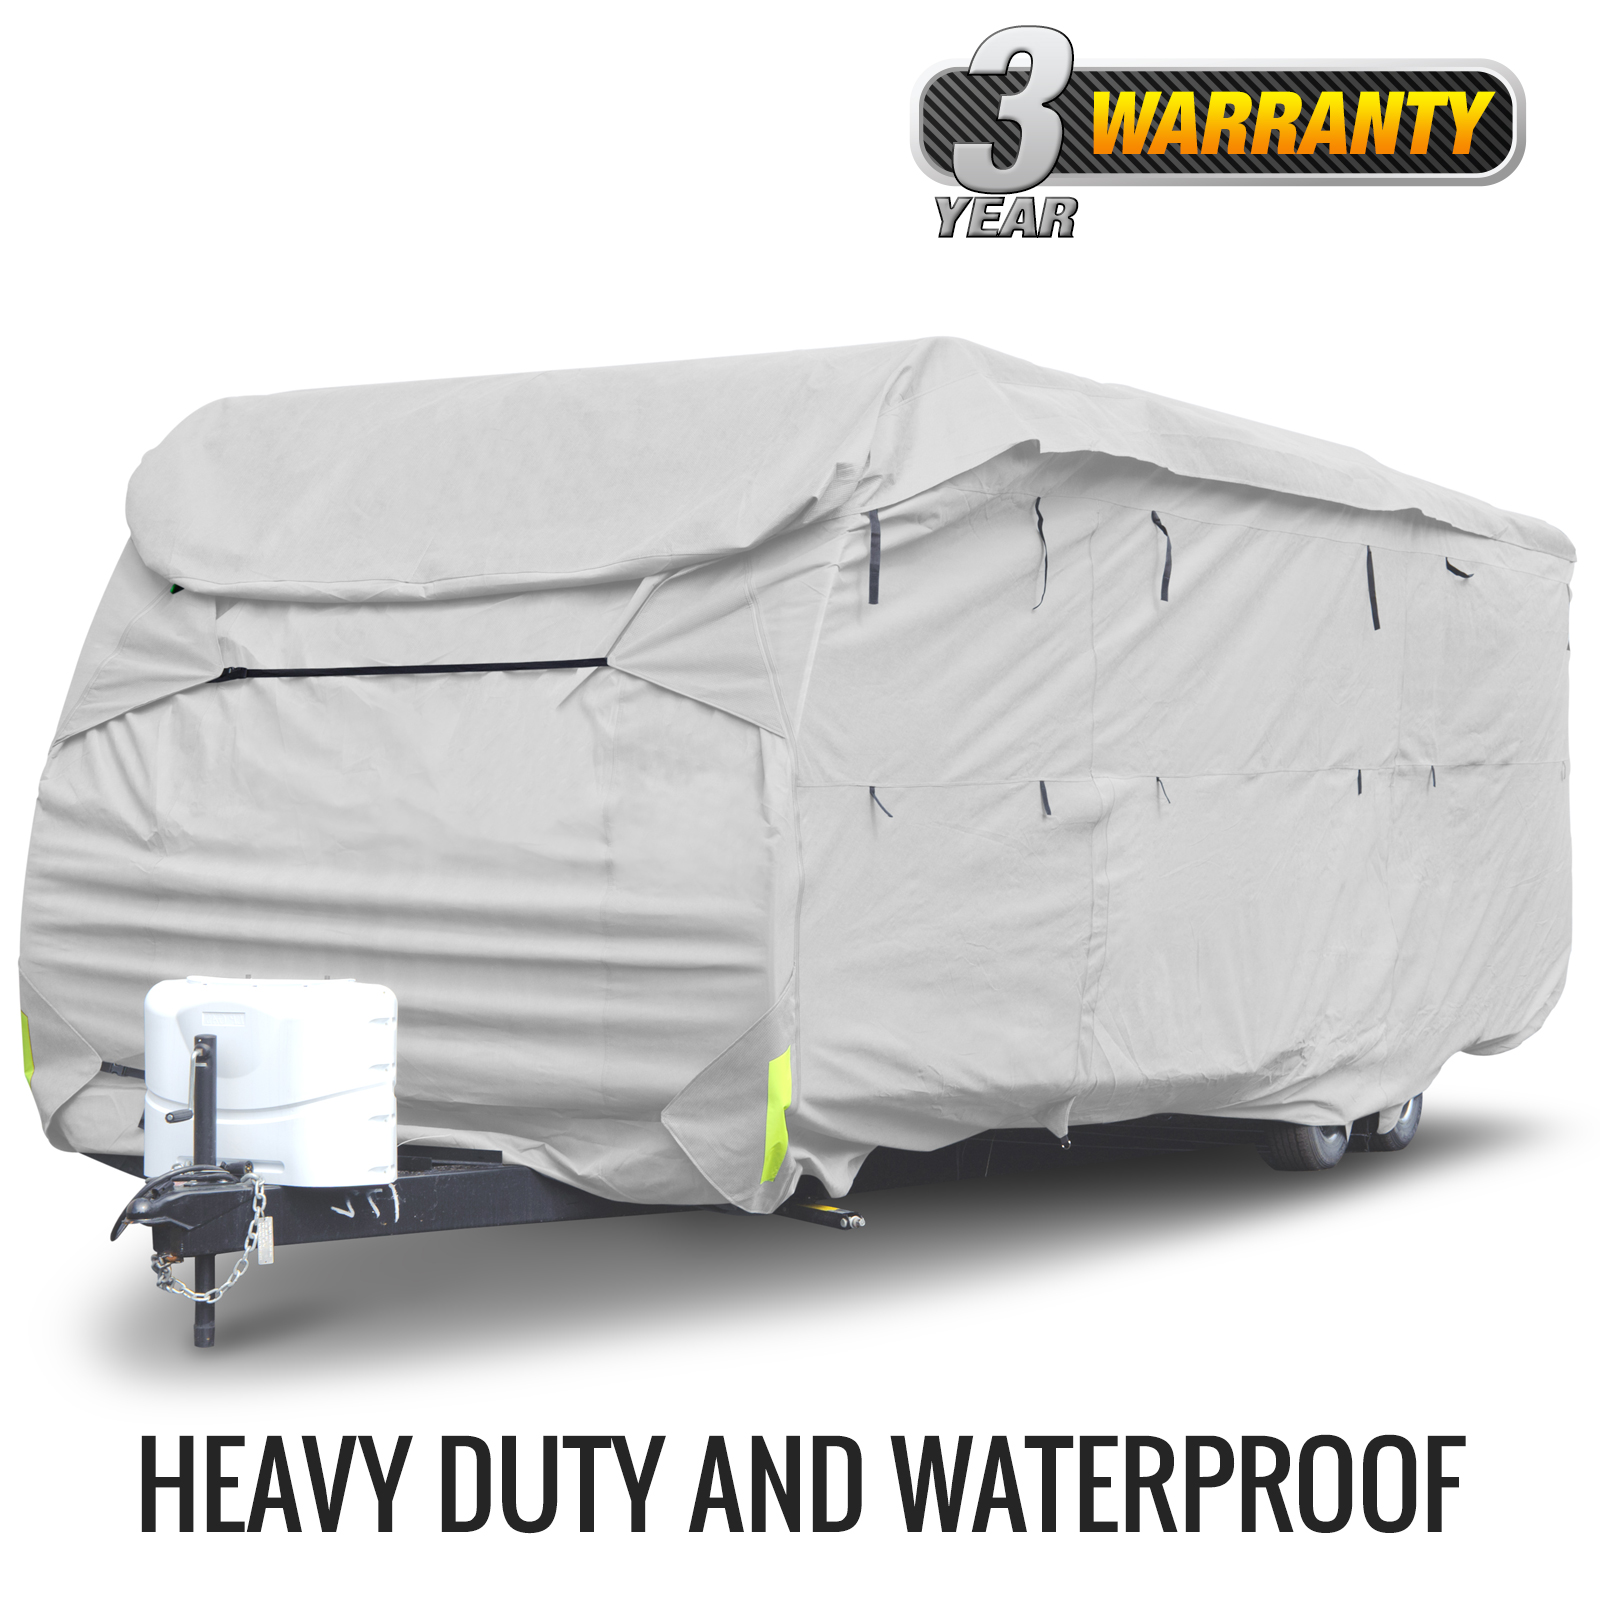 Budge Premier Toy Hauler or Travel Trailer Cover (Gray) Size A Up to 21' Long